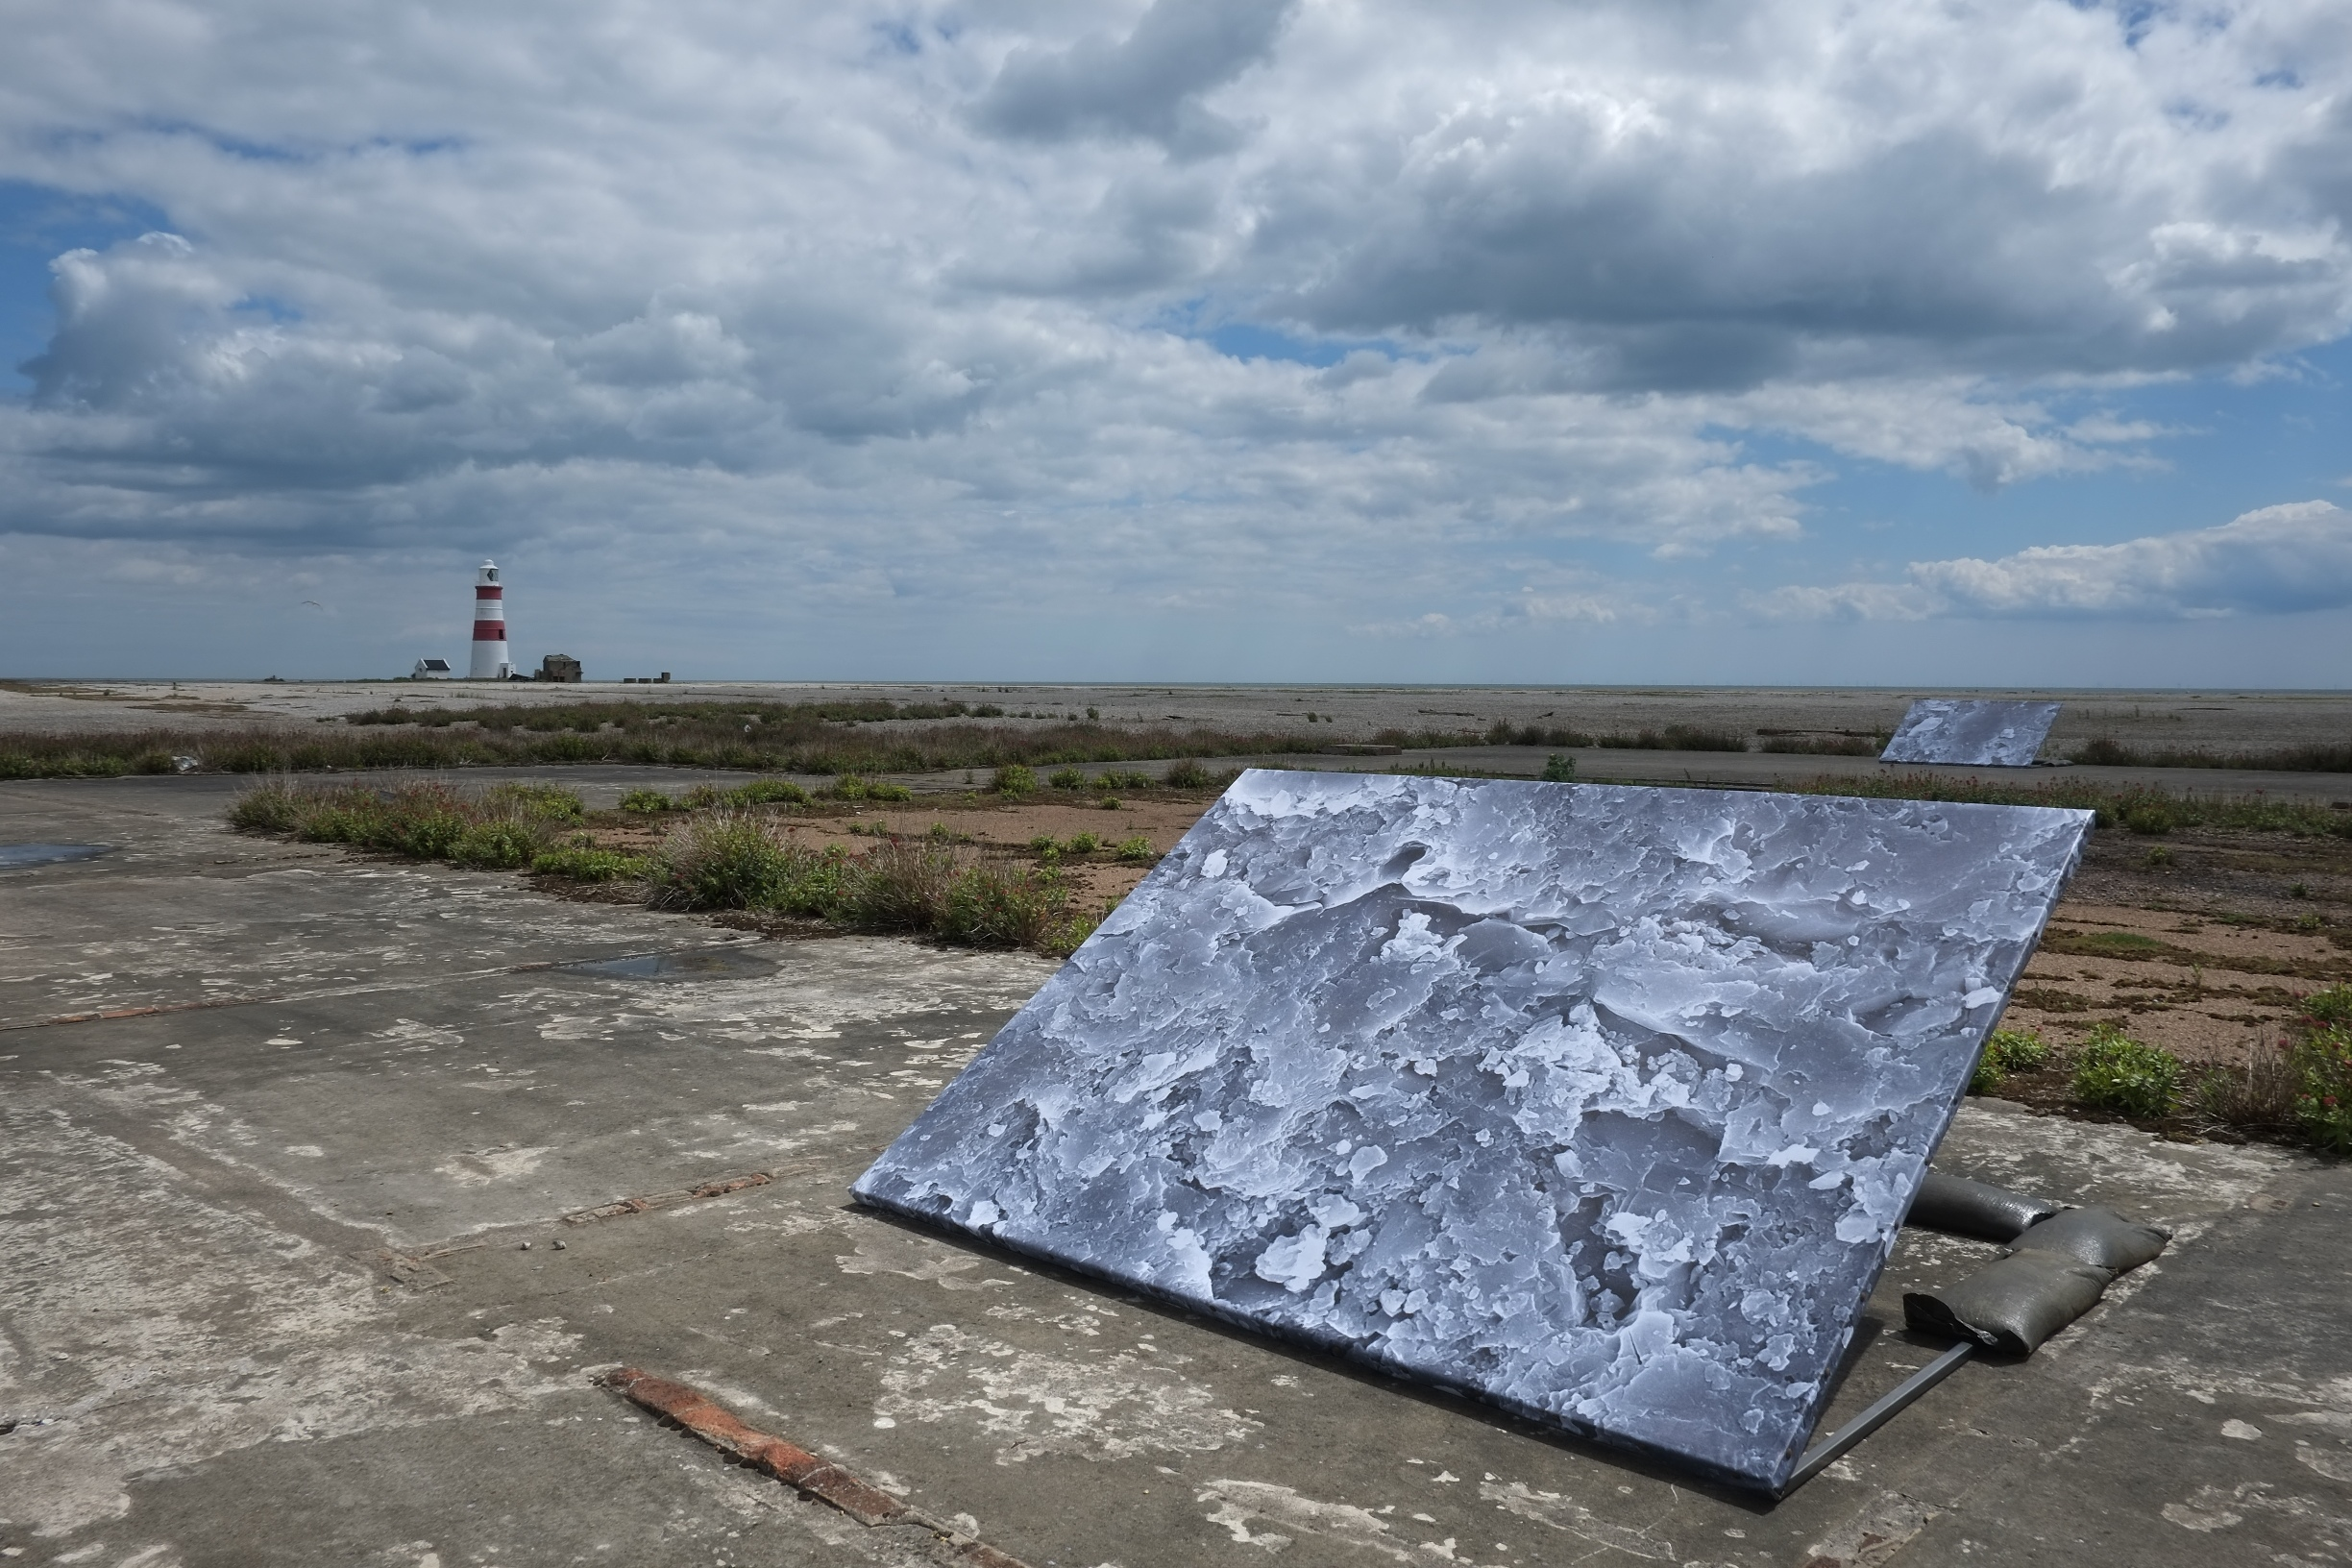 ANYA GALLACCIO, Untitled landscapes, 2014. Image credit  - Owain Thomas, courtesy SNAP Art at the Aldeburgh Festival